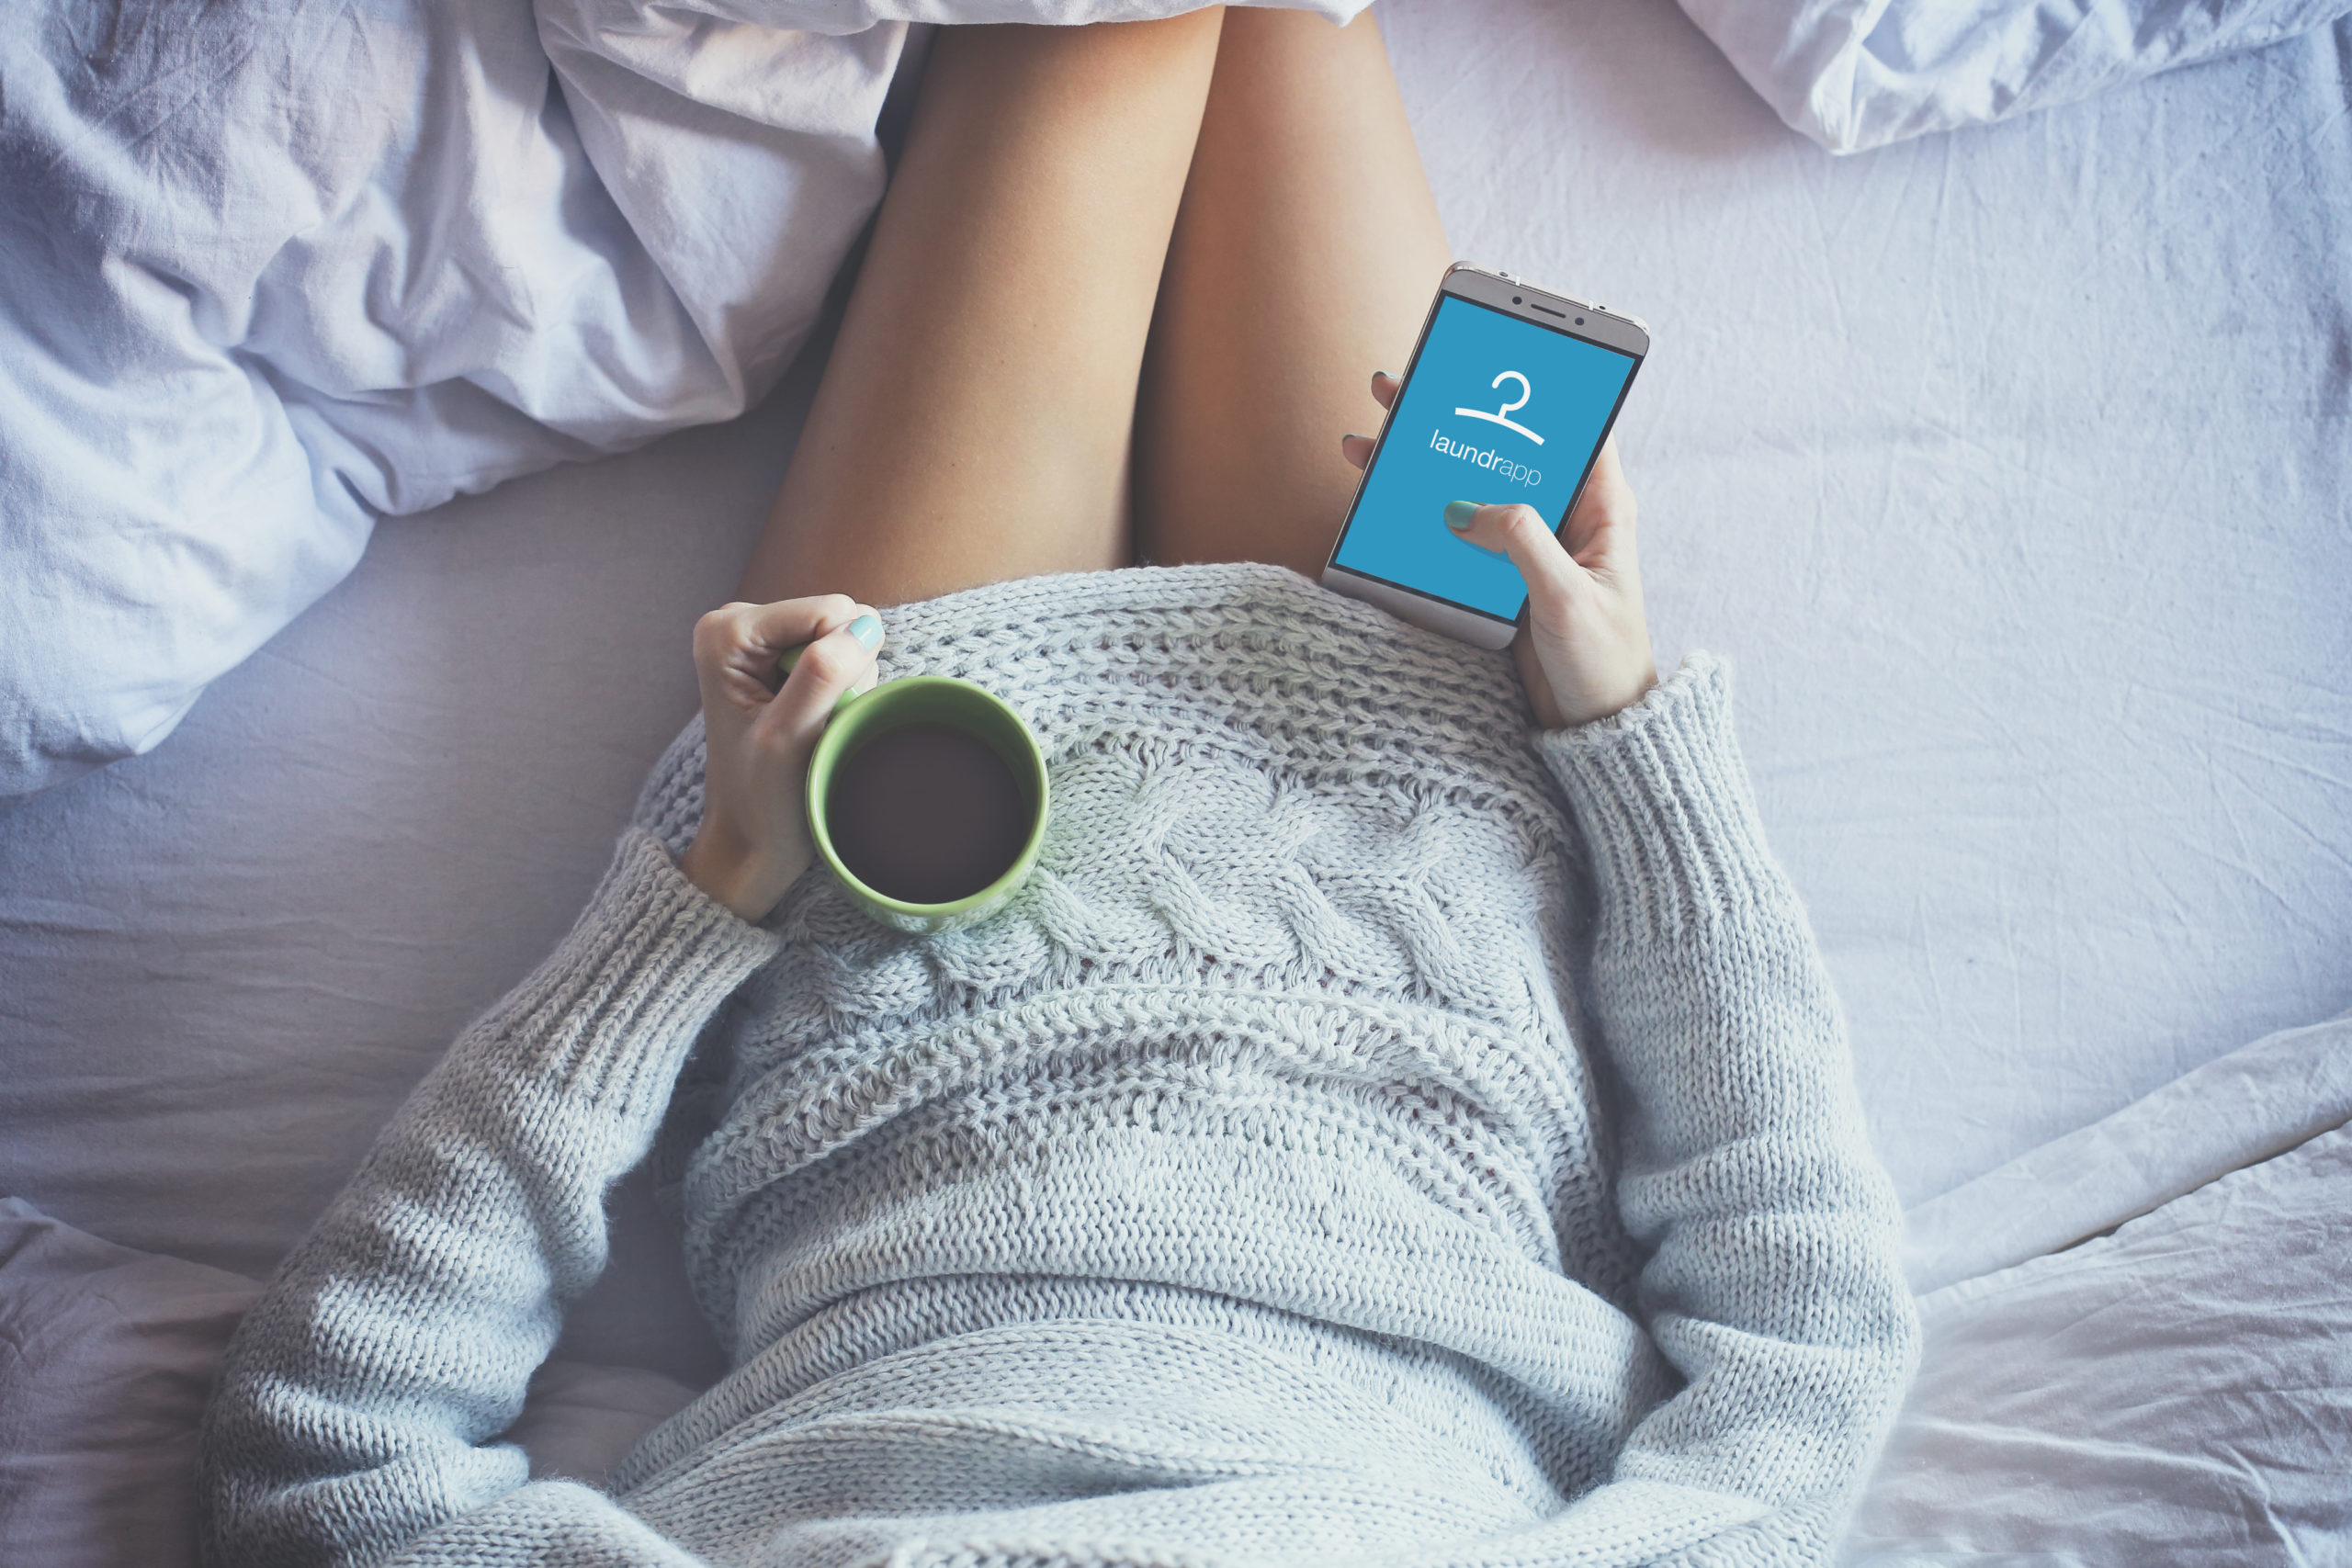 Woman in bed with coffee looking at Laundrapp on her phone